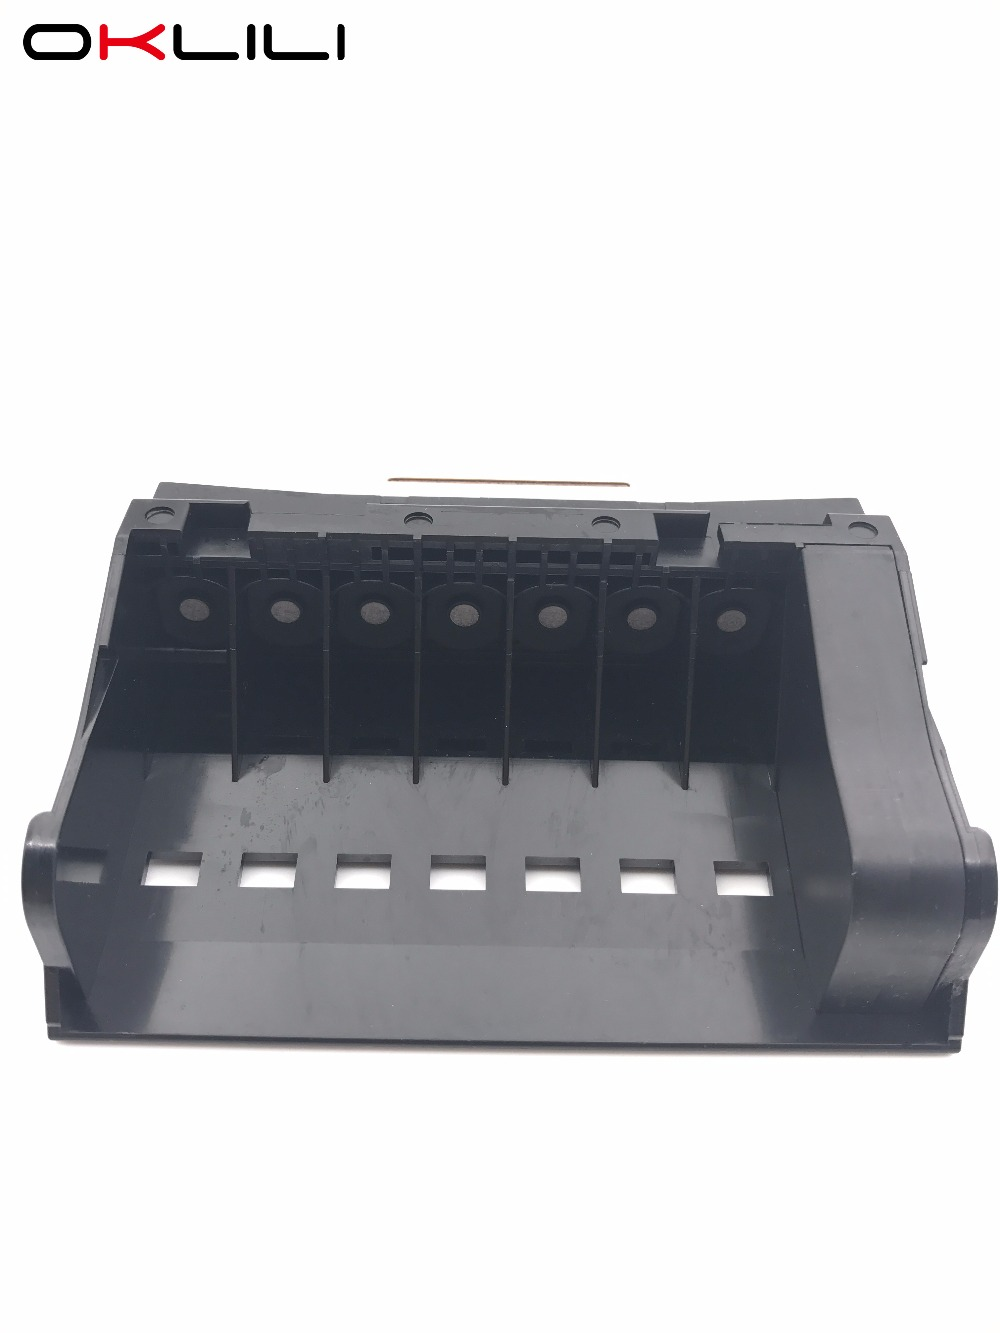 OKLILI ORIGINAL QY6-0053 QY6-0053-000 Printhead Print Head Printer Head for Canon PIXUS 990i i990 iP8100 oklili original qy6 0045 qy6 0045 000 printhead print head printer head for canon i550 pixus 550i